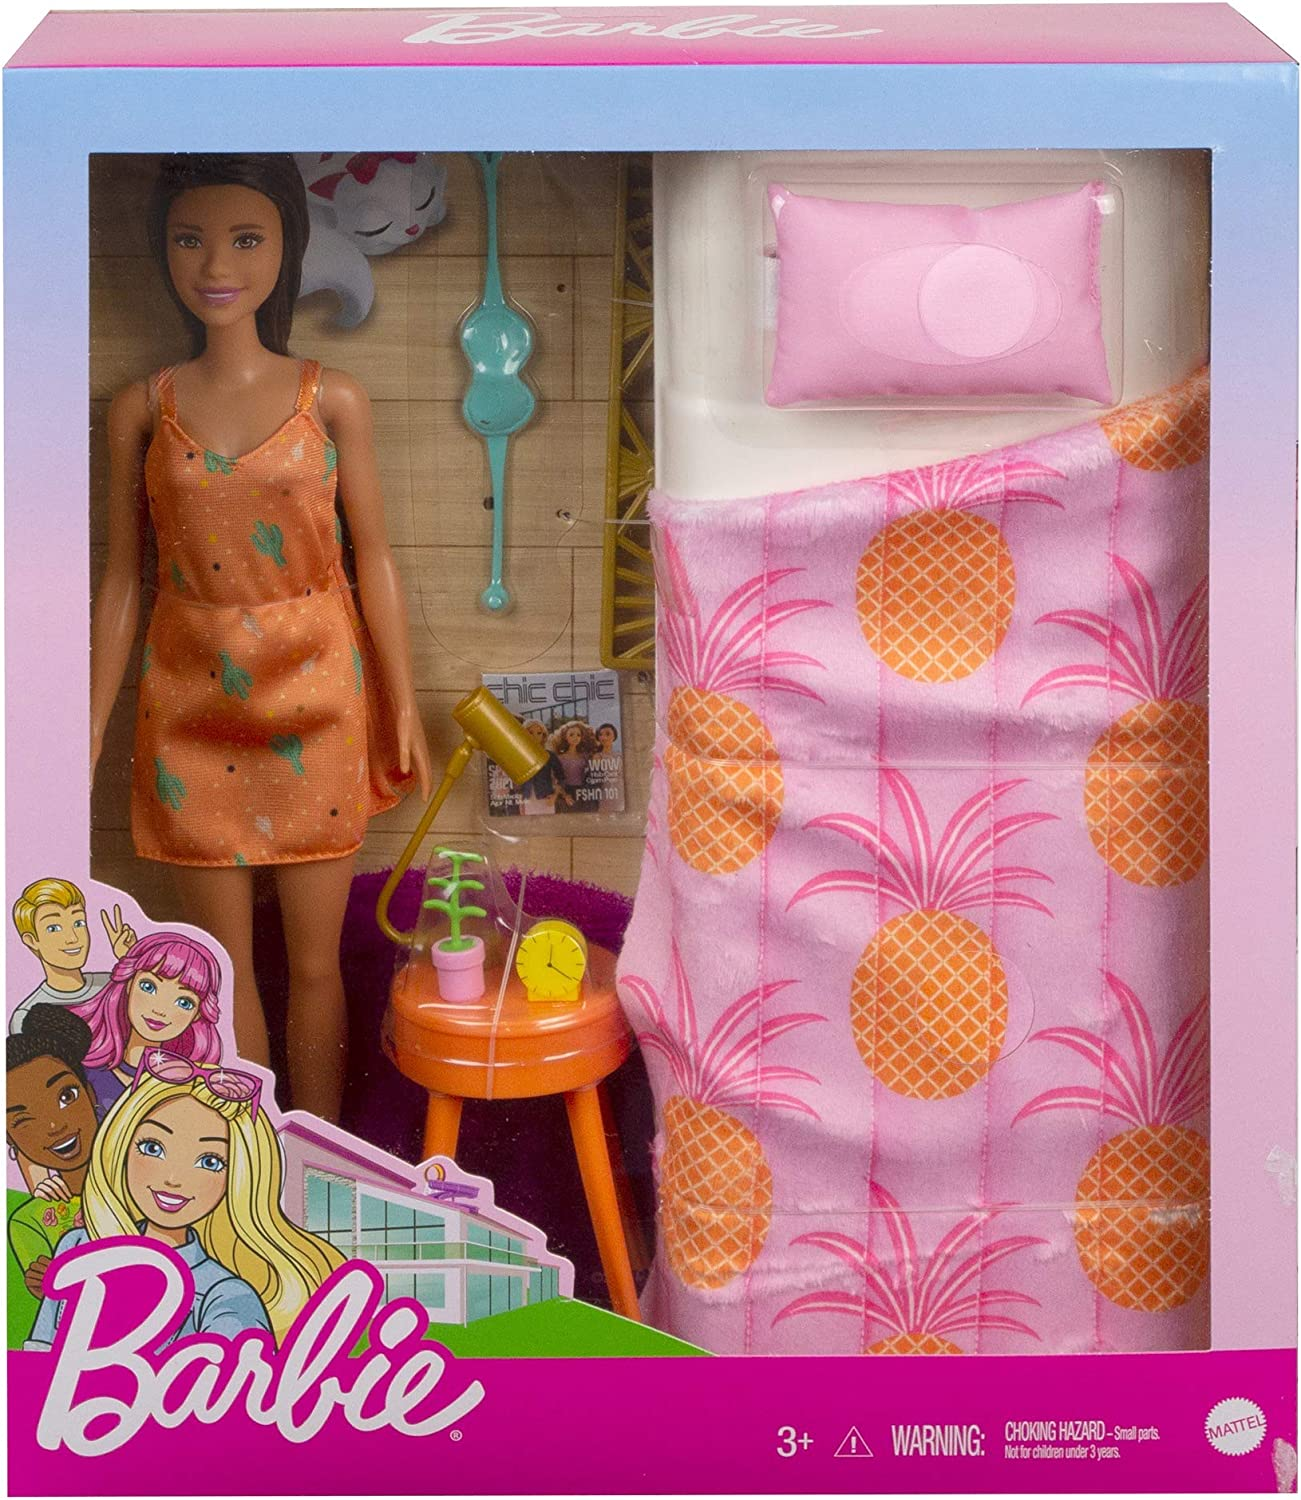 Barbie Doll And Bedroom Playset Indoor Furniture Playset Doll 11 5 Inch Brunette Wearing Pajamas And Accessories Gift For 3 To 7 Year Olds Toys Games Playsets Agtcorp Com